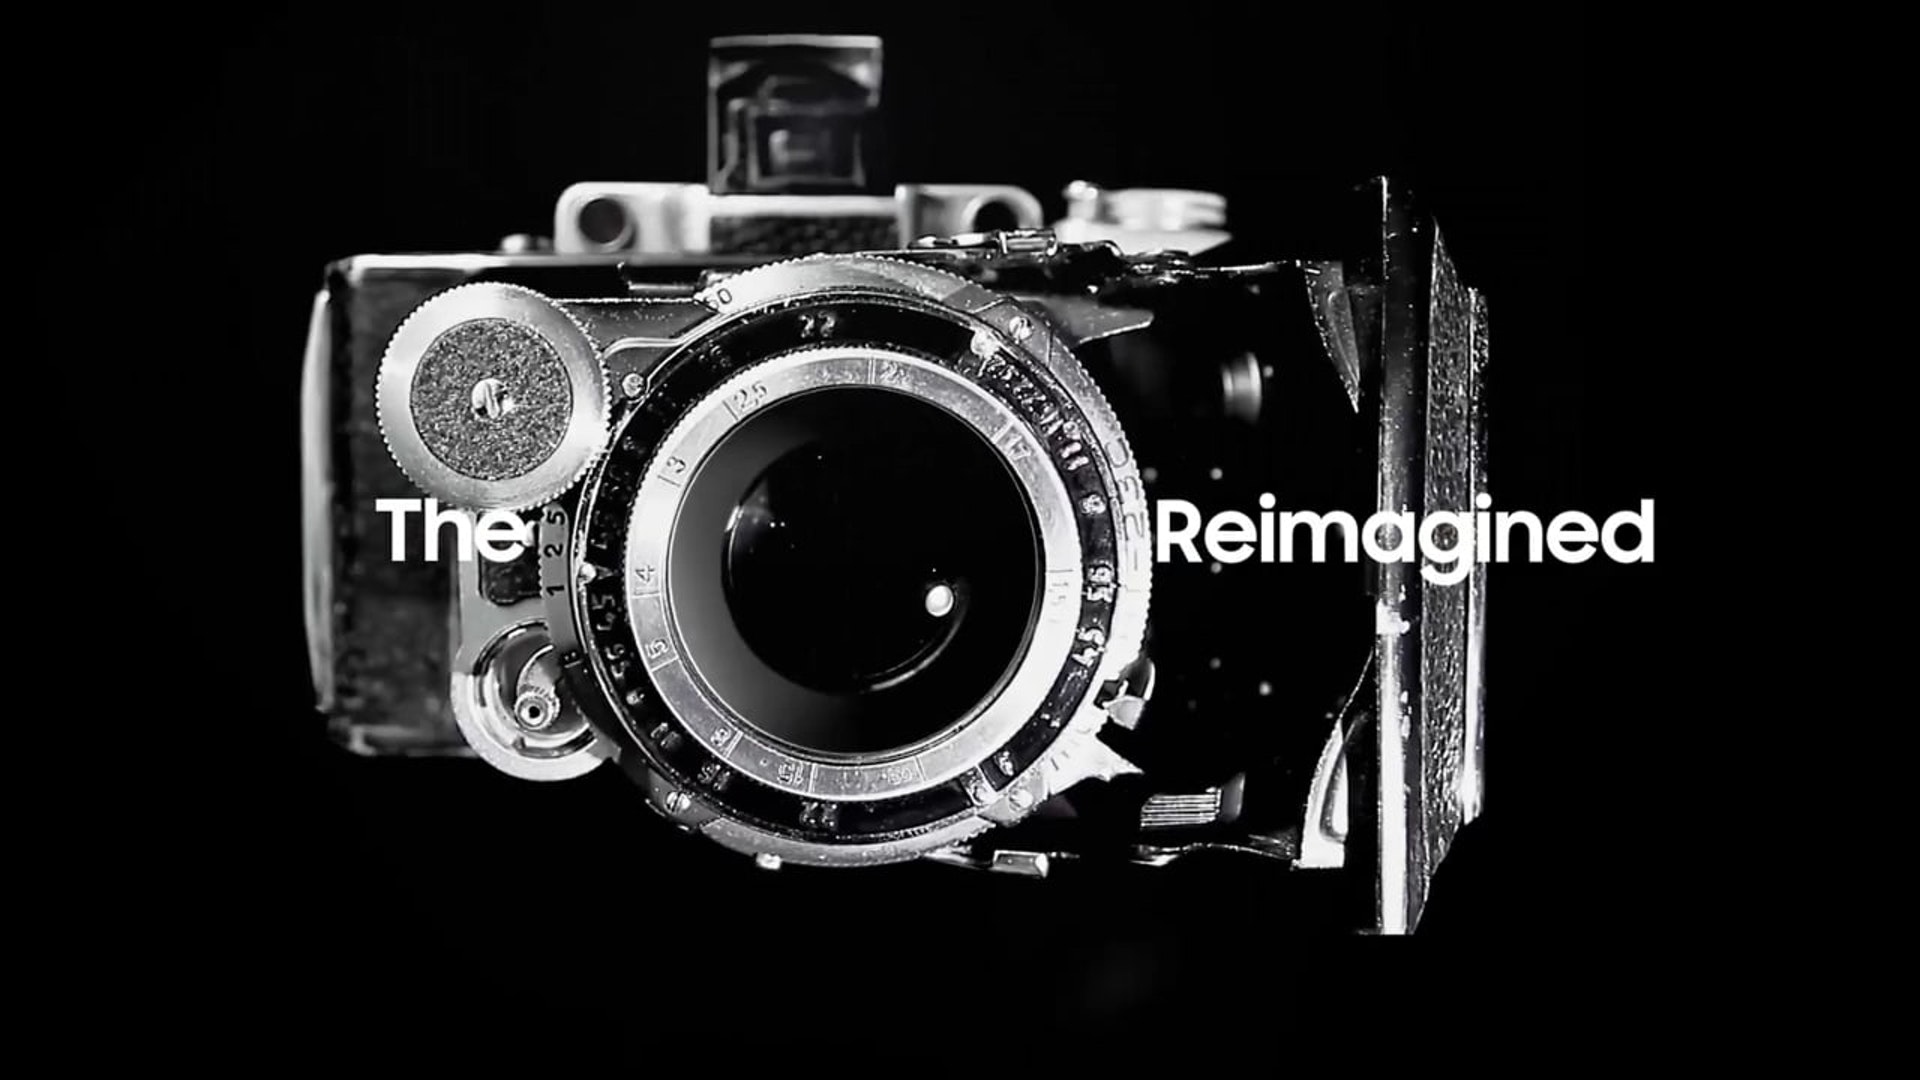 Samsung S9 - The Camera Reimagined